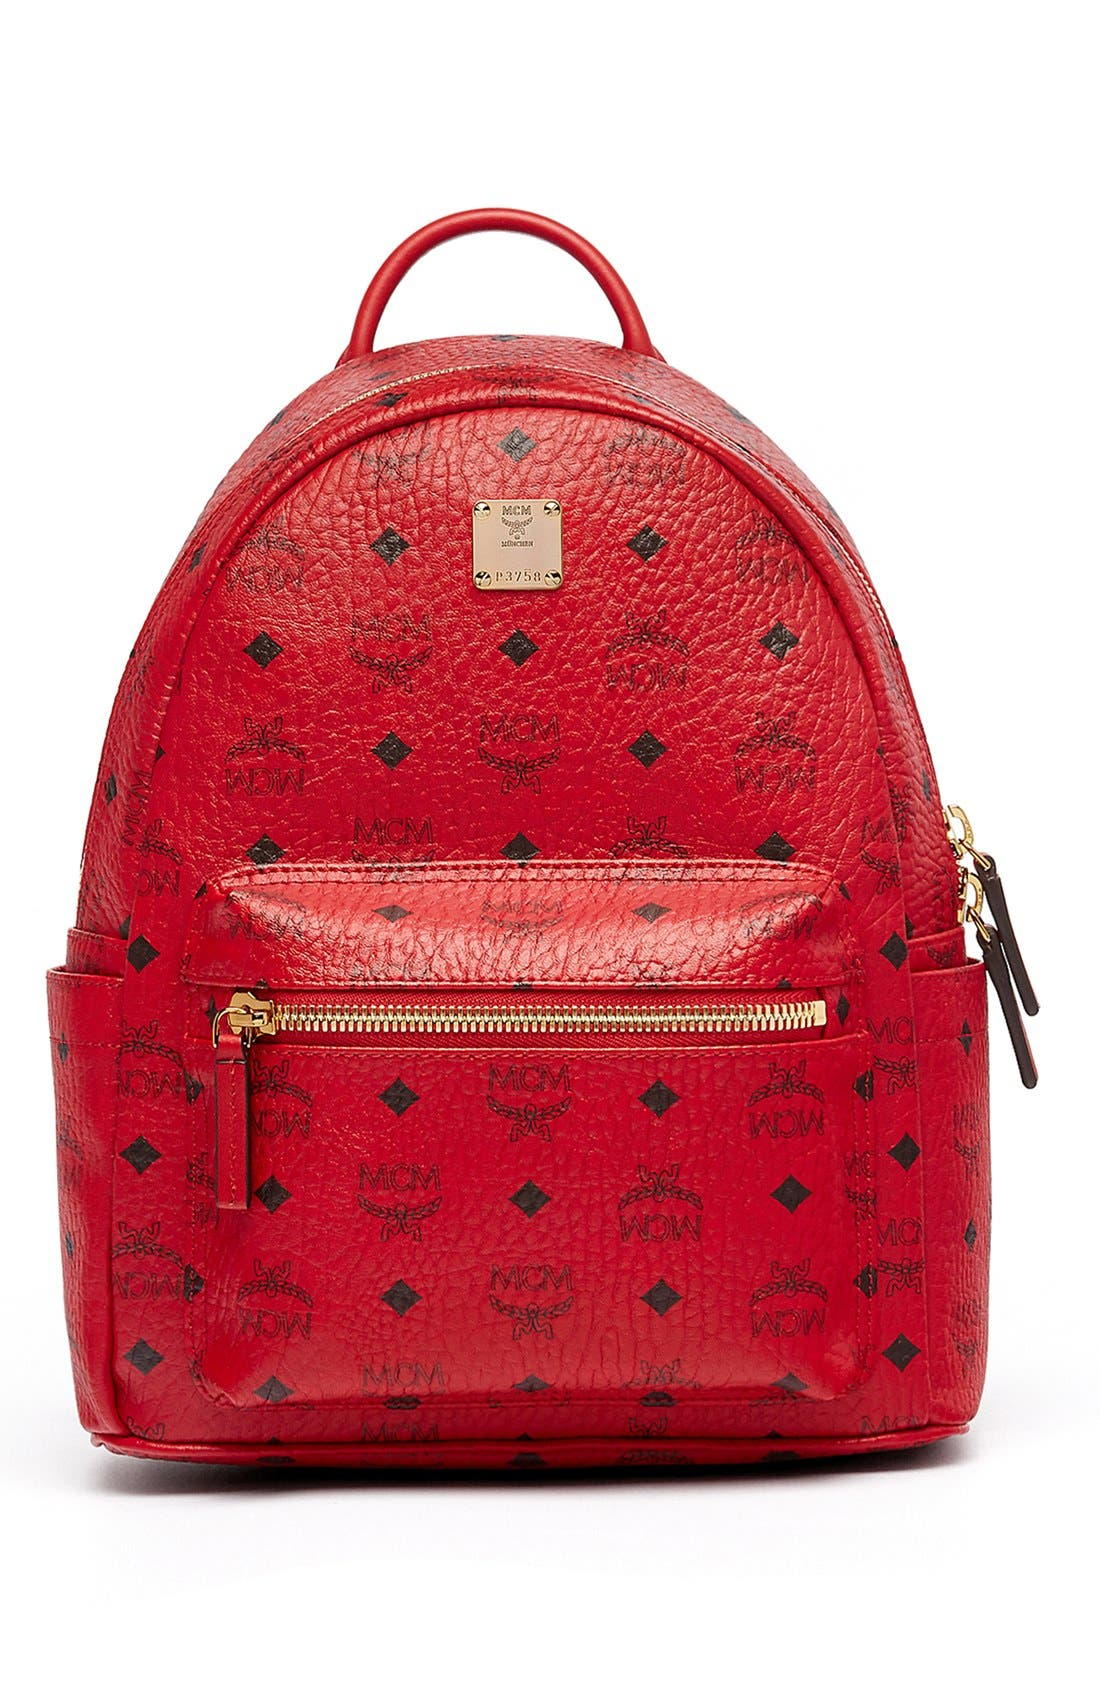 Main Image - MCM 'Small Stark' Coated Canvas Backpack